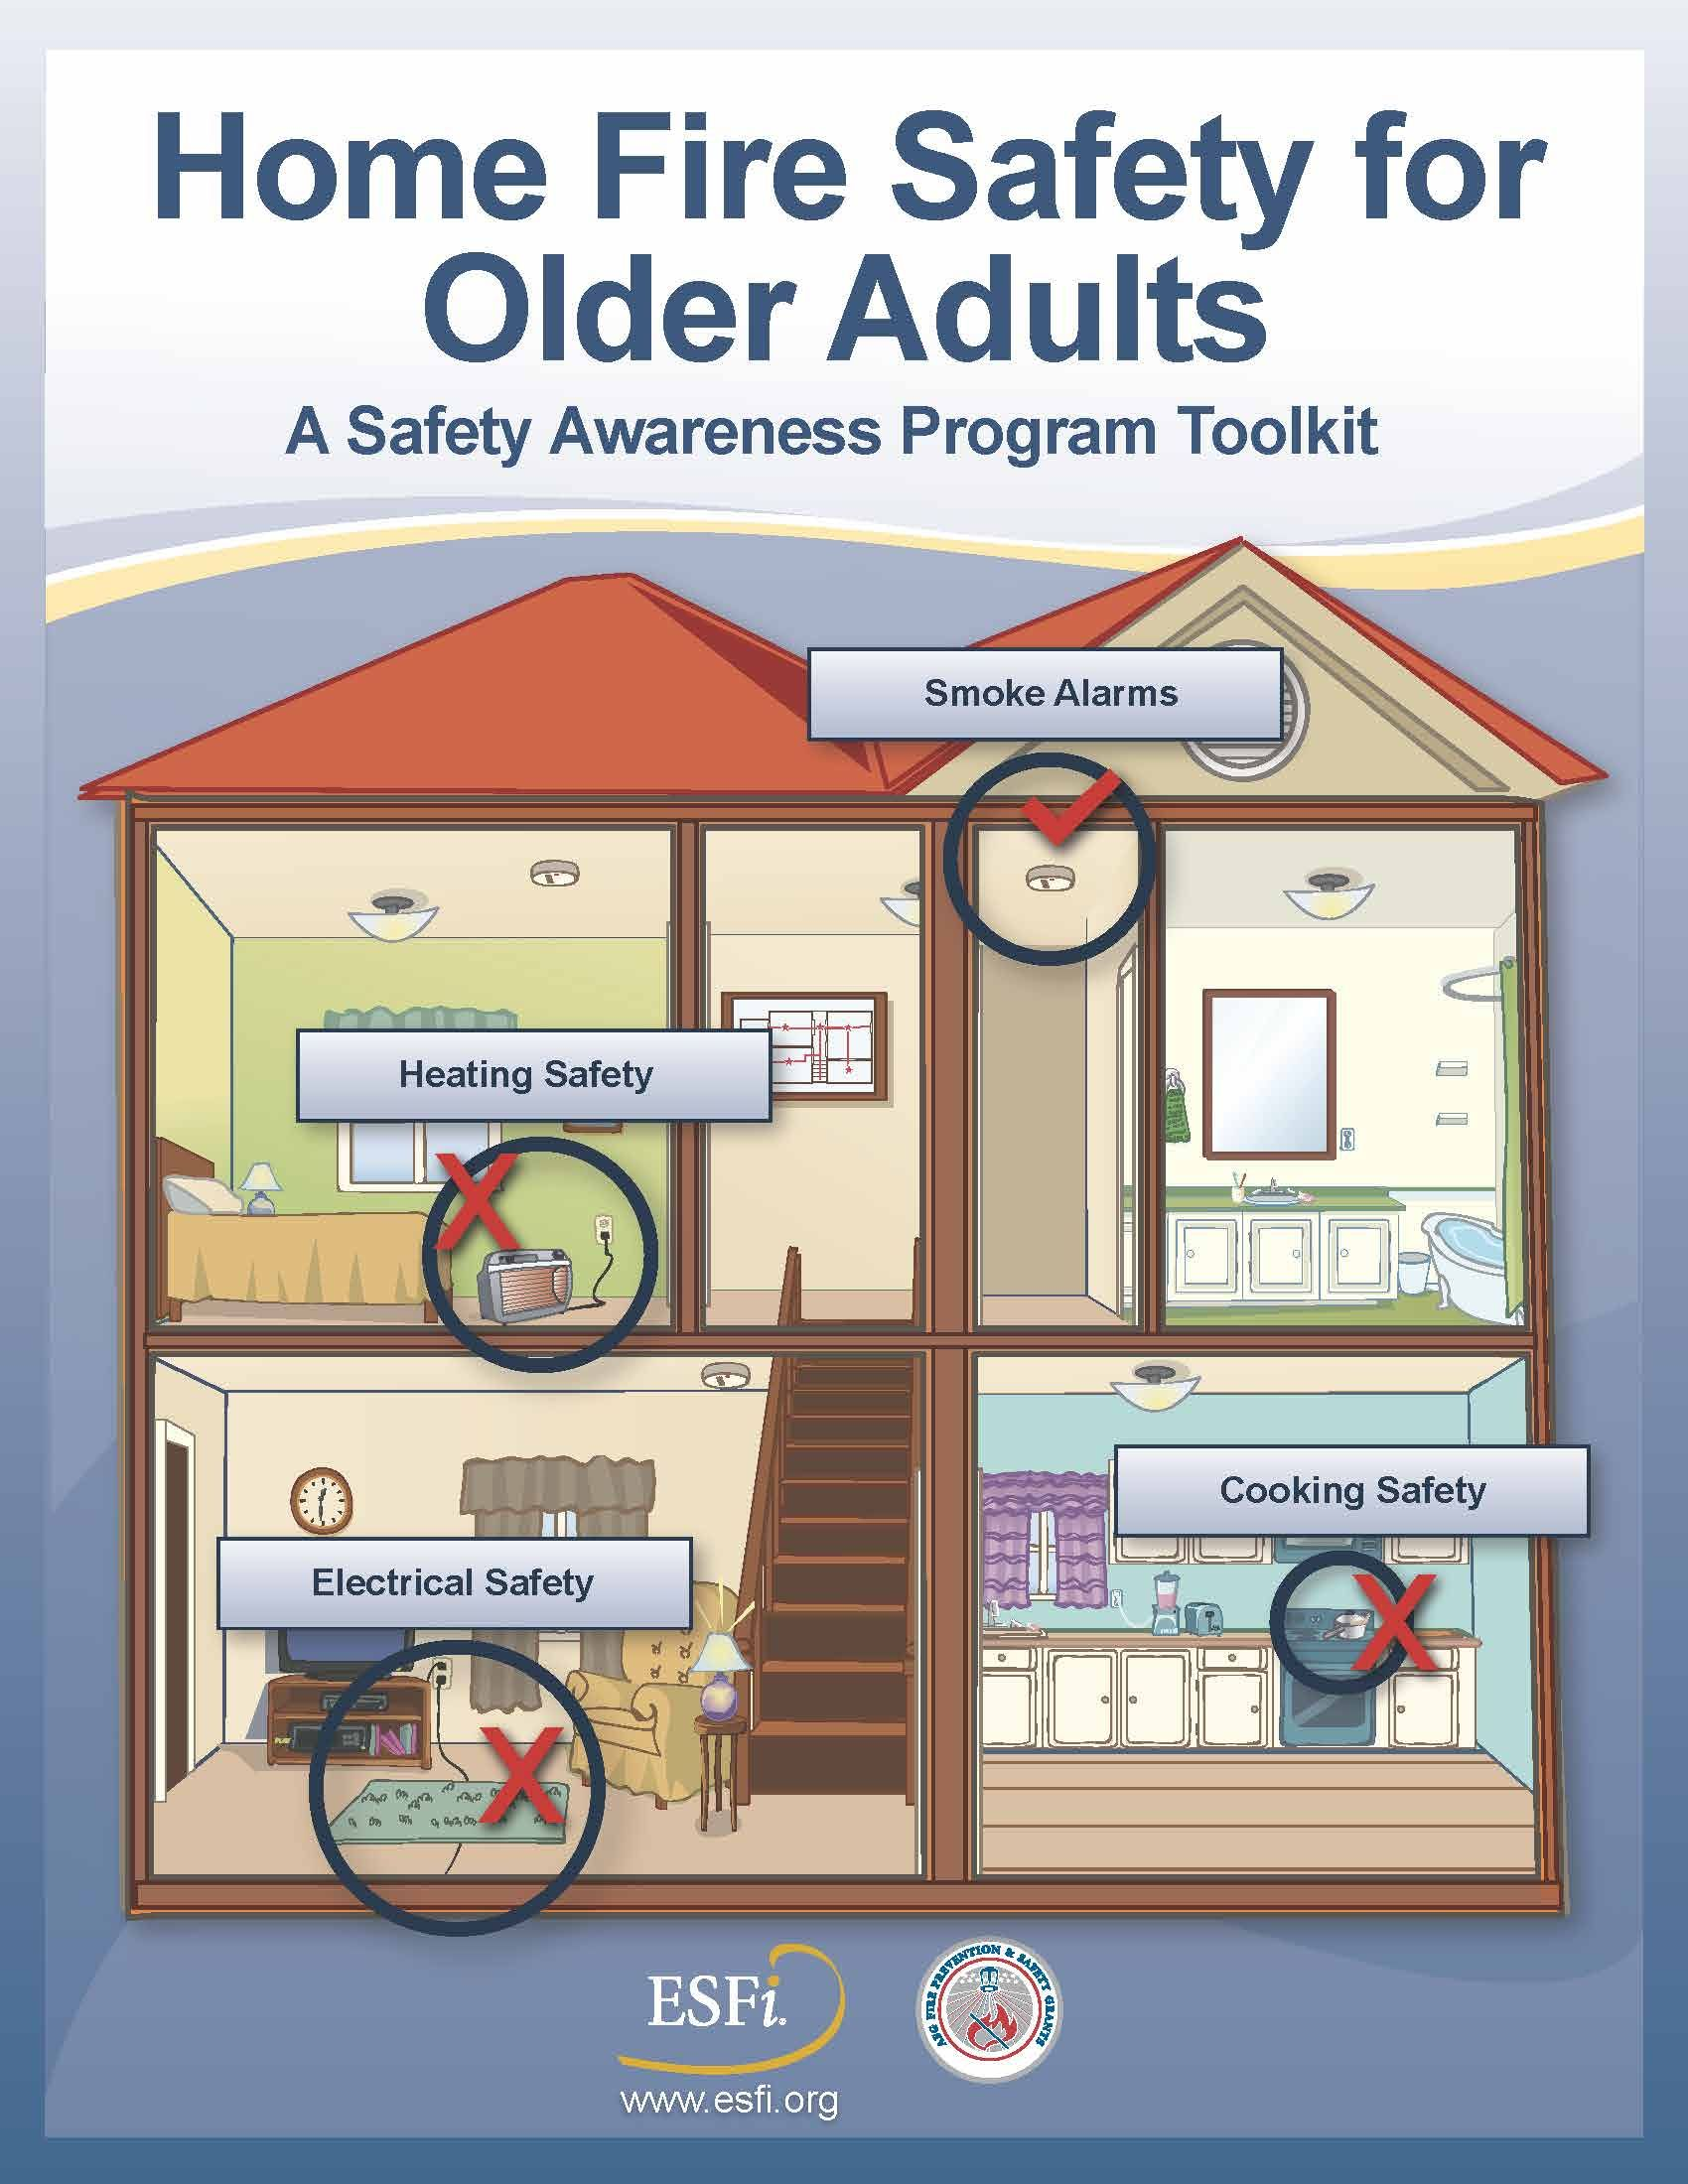 Home safety for older adults yourhomematters2015 for Fire prevention tips for home